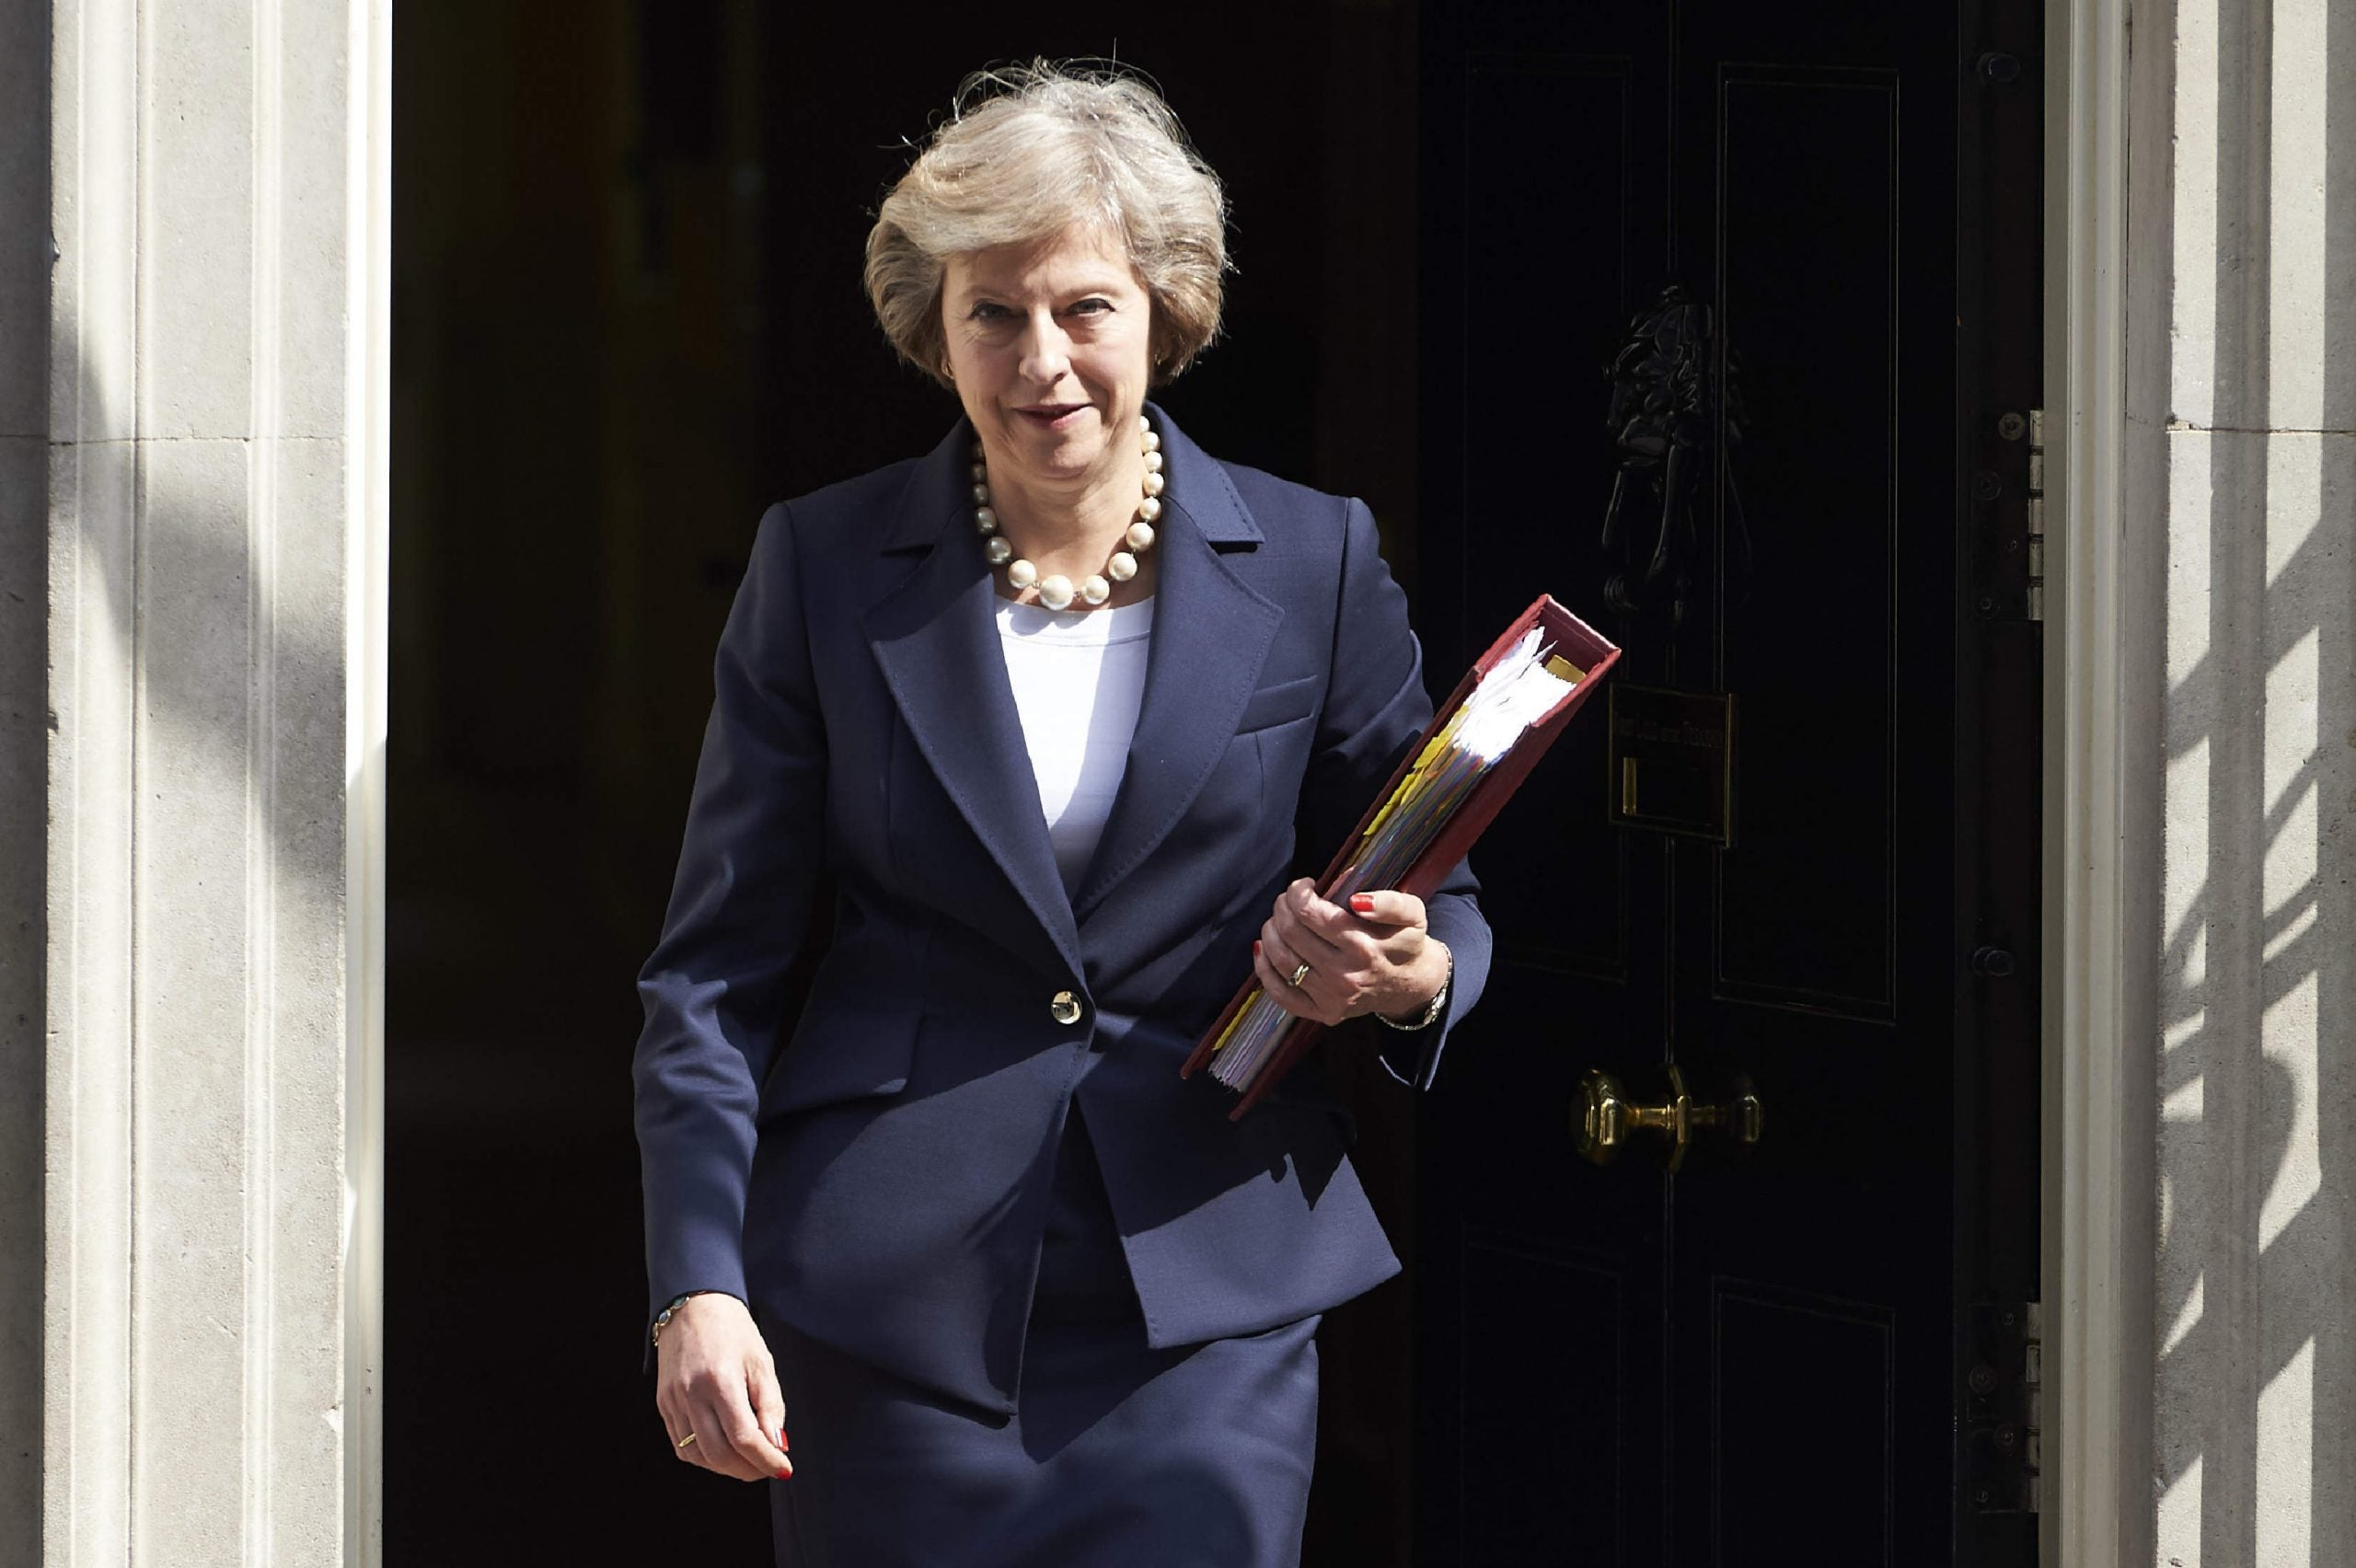 Theresa May's mission is to resolve Thatcher's contradictory legacy